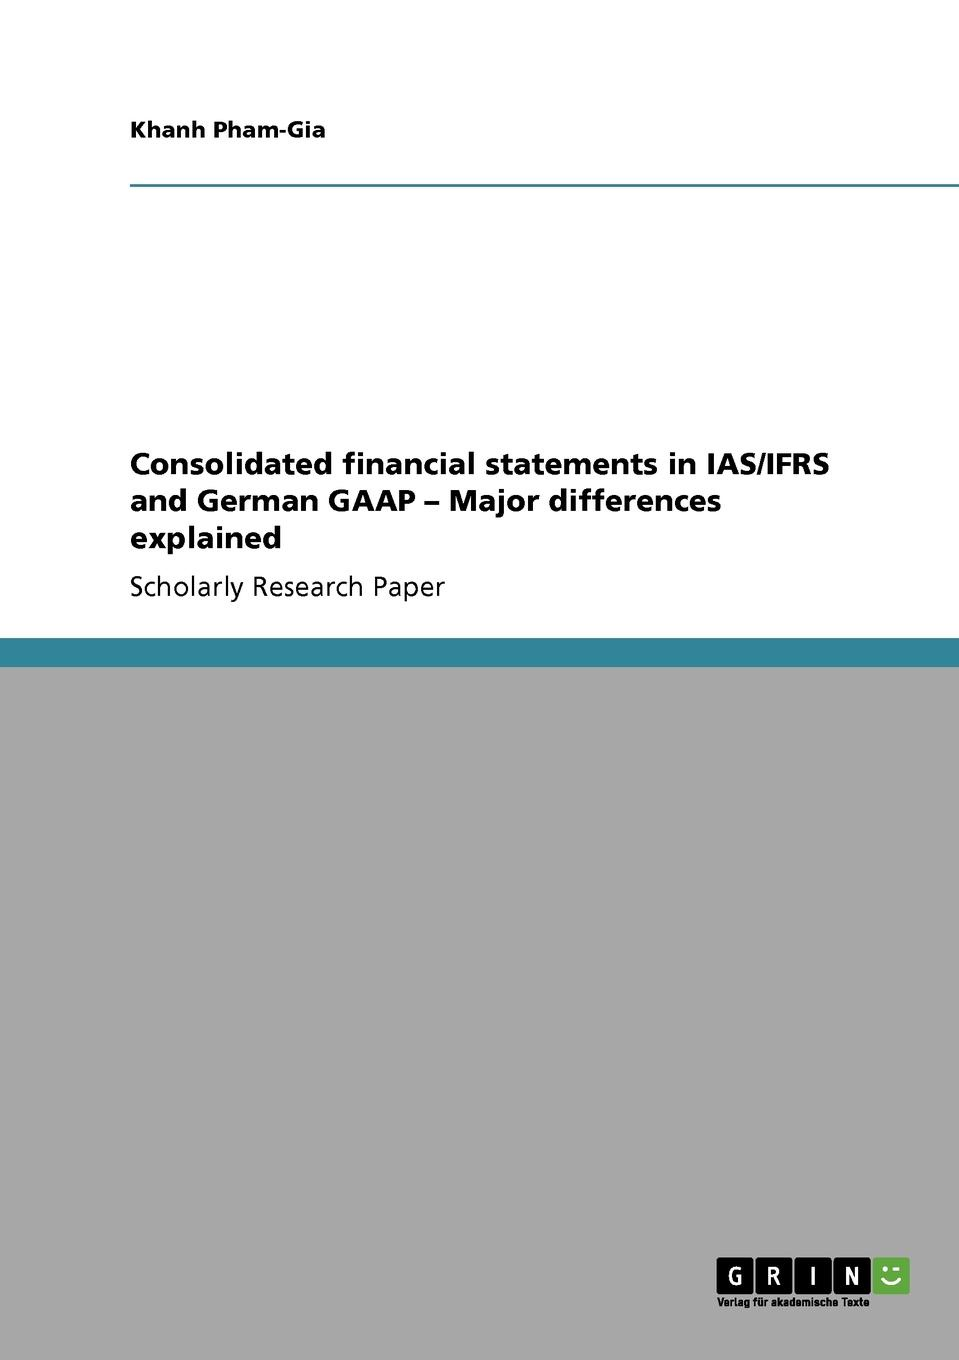 Khanh Pham-Gia Consolidated financial statements in IAS/IFRS and German GAAP - Major differences explained ifrs adoption financial information quality and investment efficiency